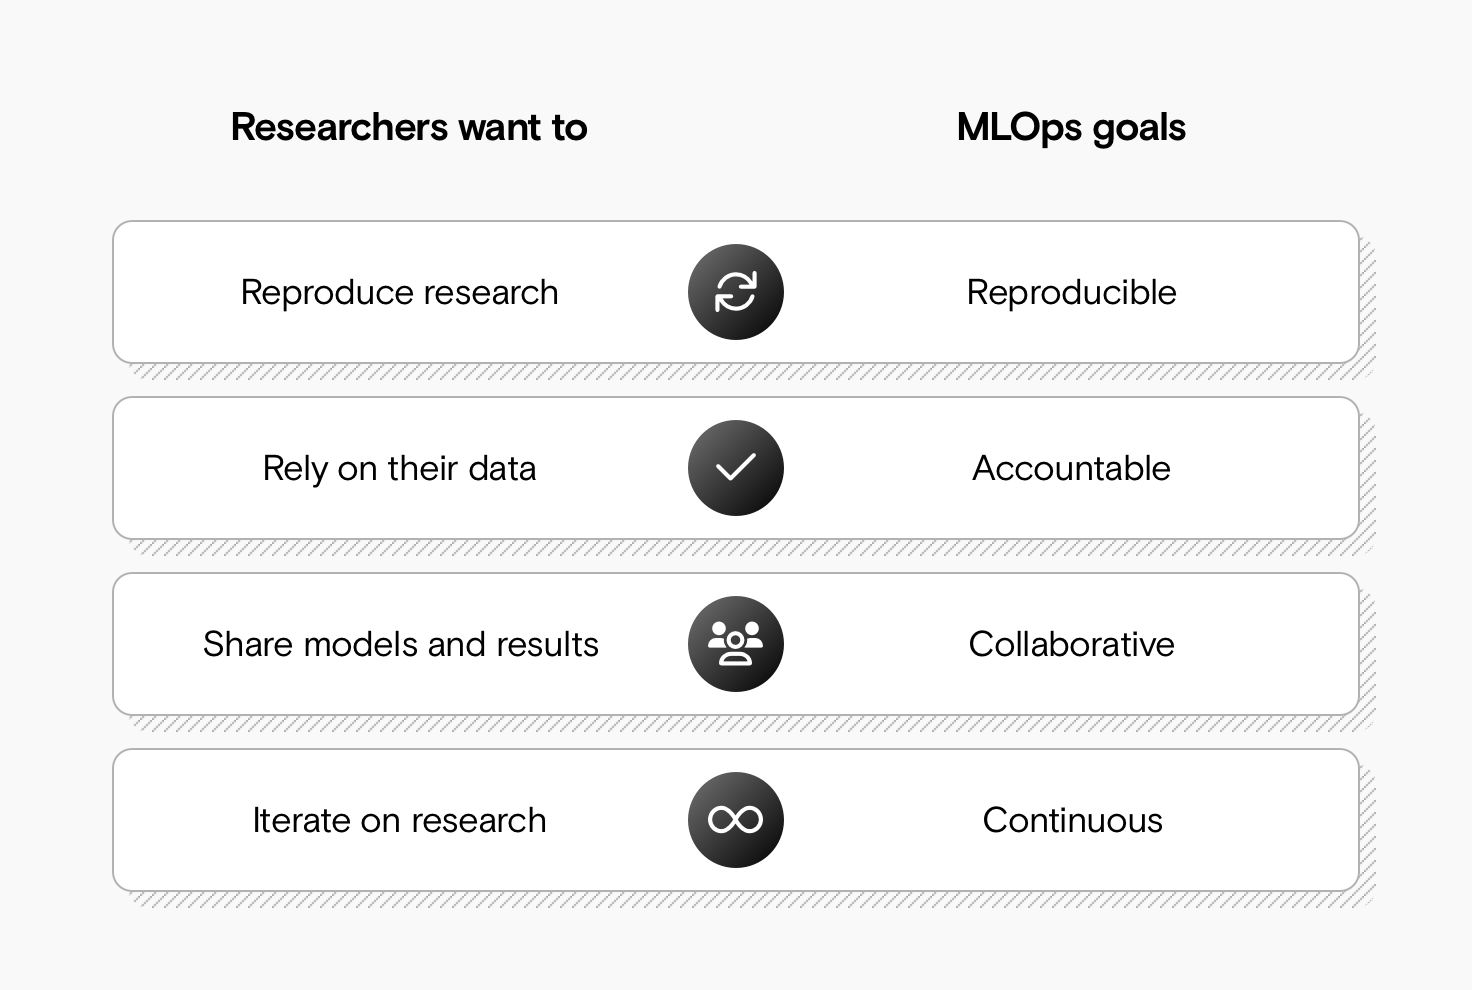 A table showing that (left) researchers want to: reproduce research, rely on their data, share models and results, and iterate on research. And showing (right) MLOps goals: reproducible, accountable, collaborative, continuous.